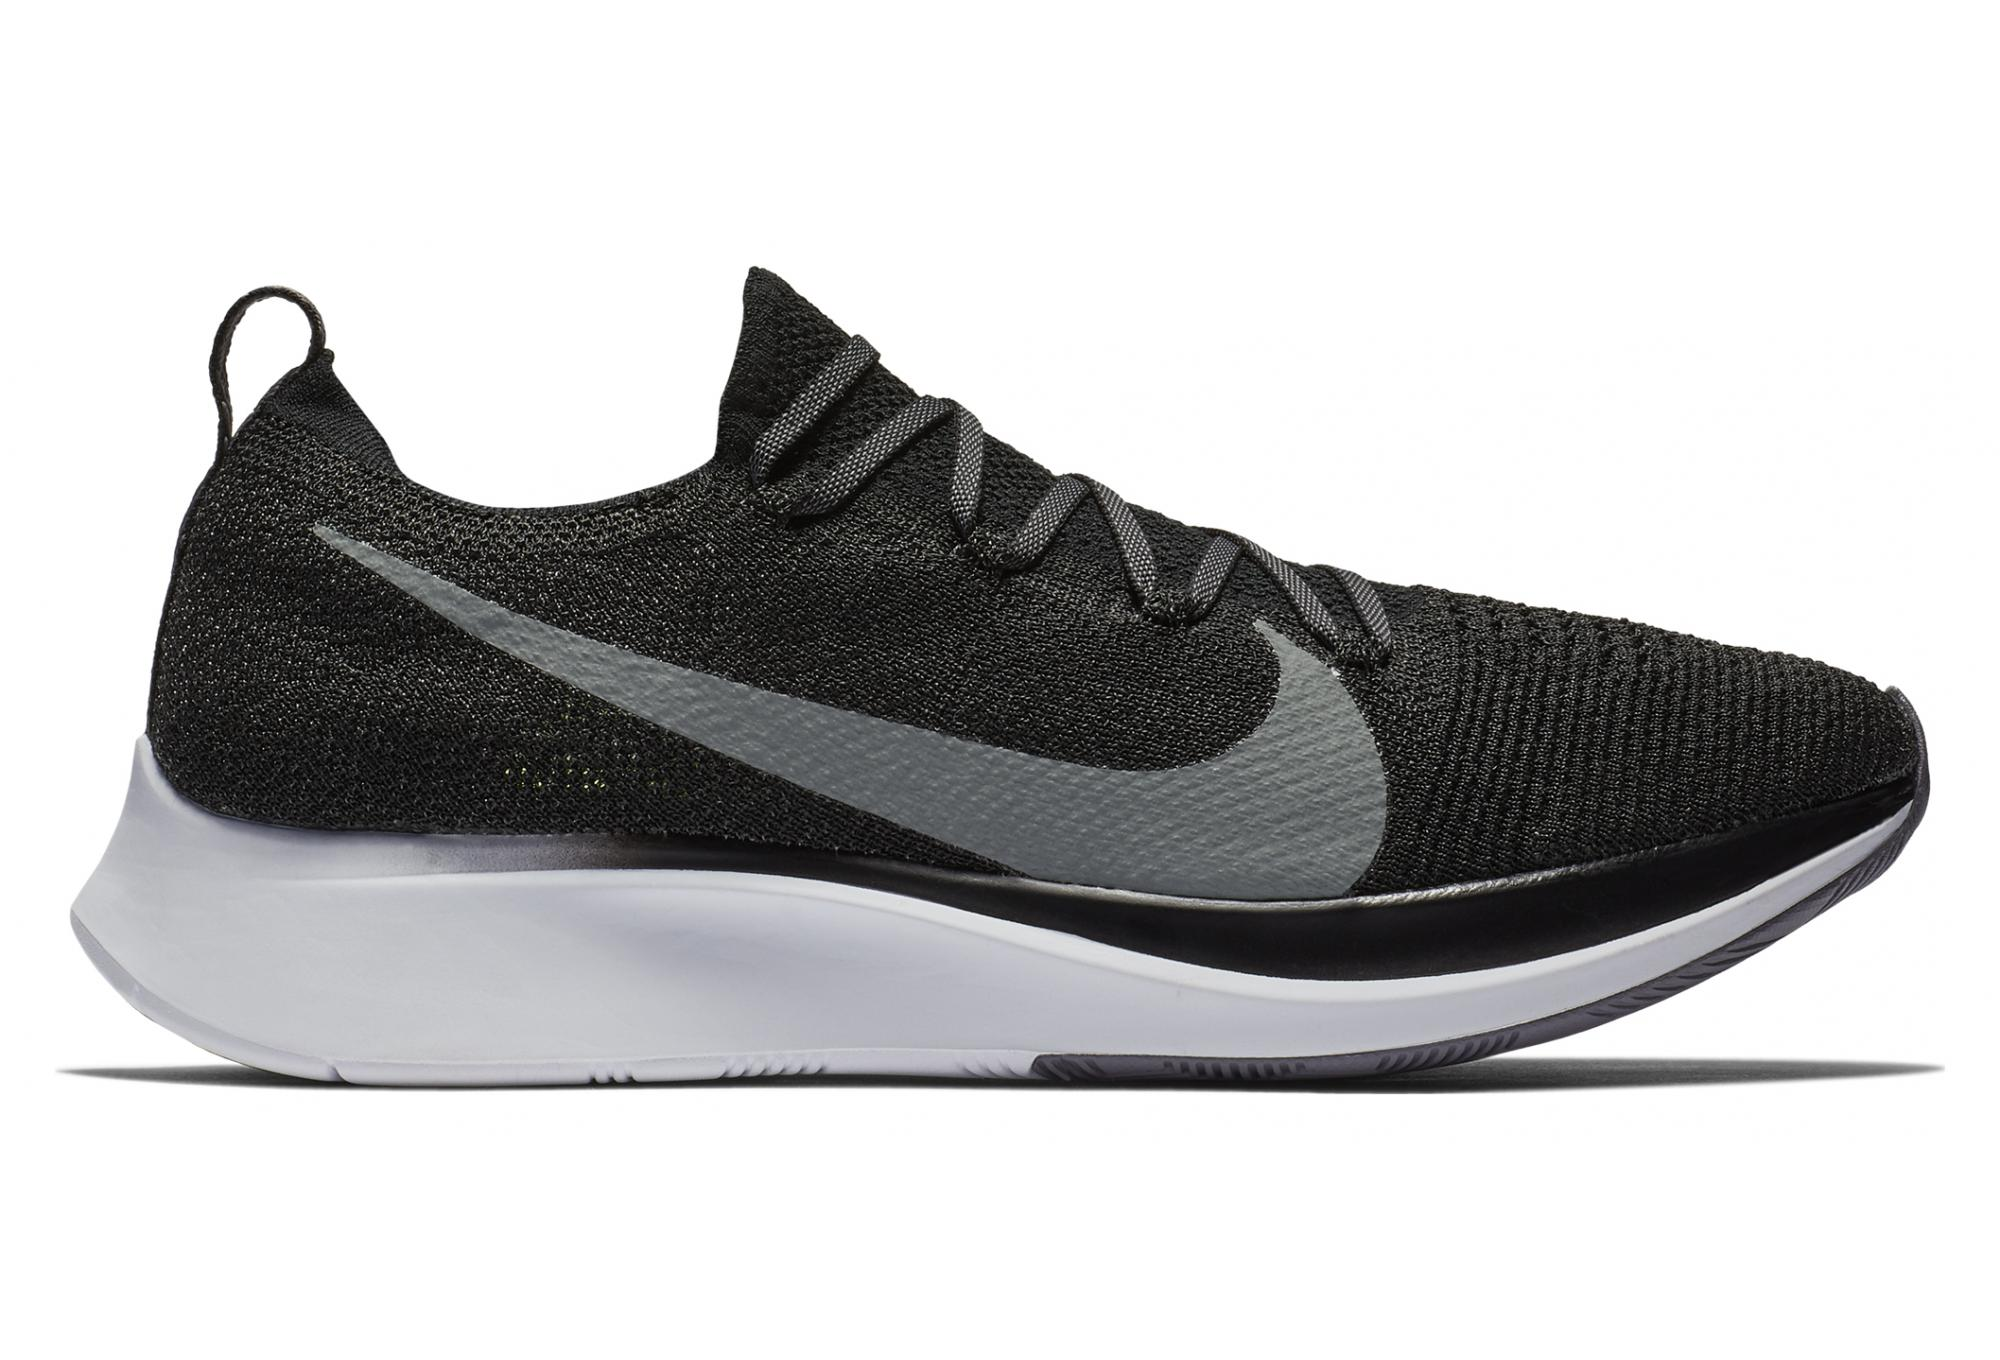 code promo 12f34 c3973 Nike Zoom Fly Flyknit Shoes Black Men